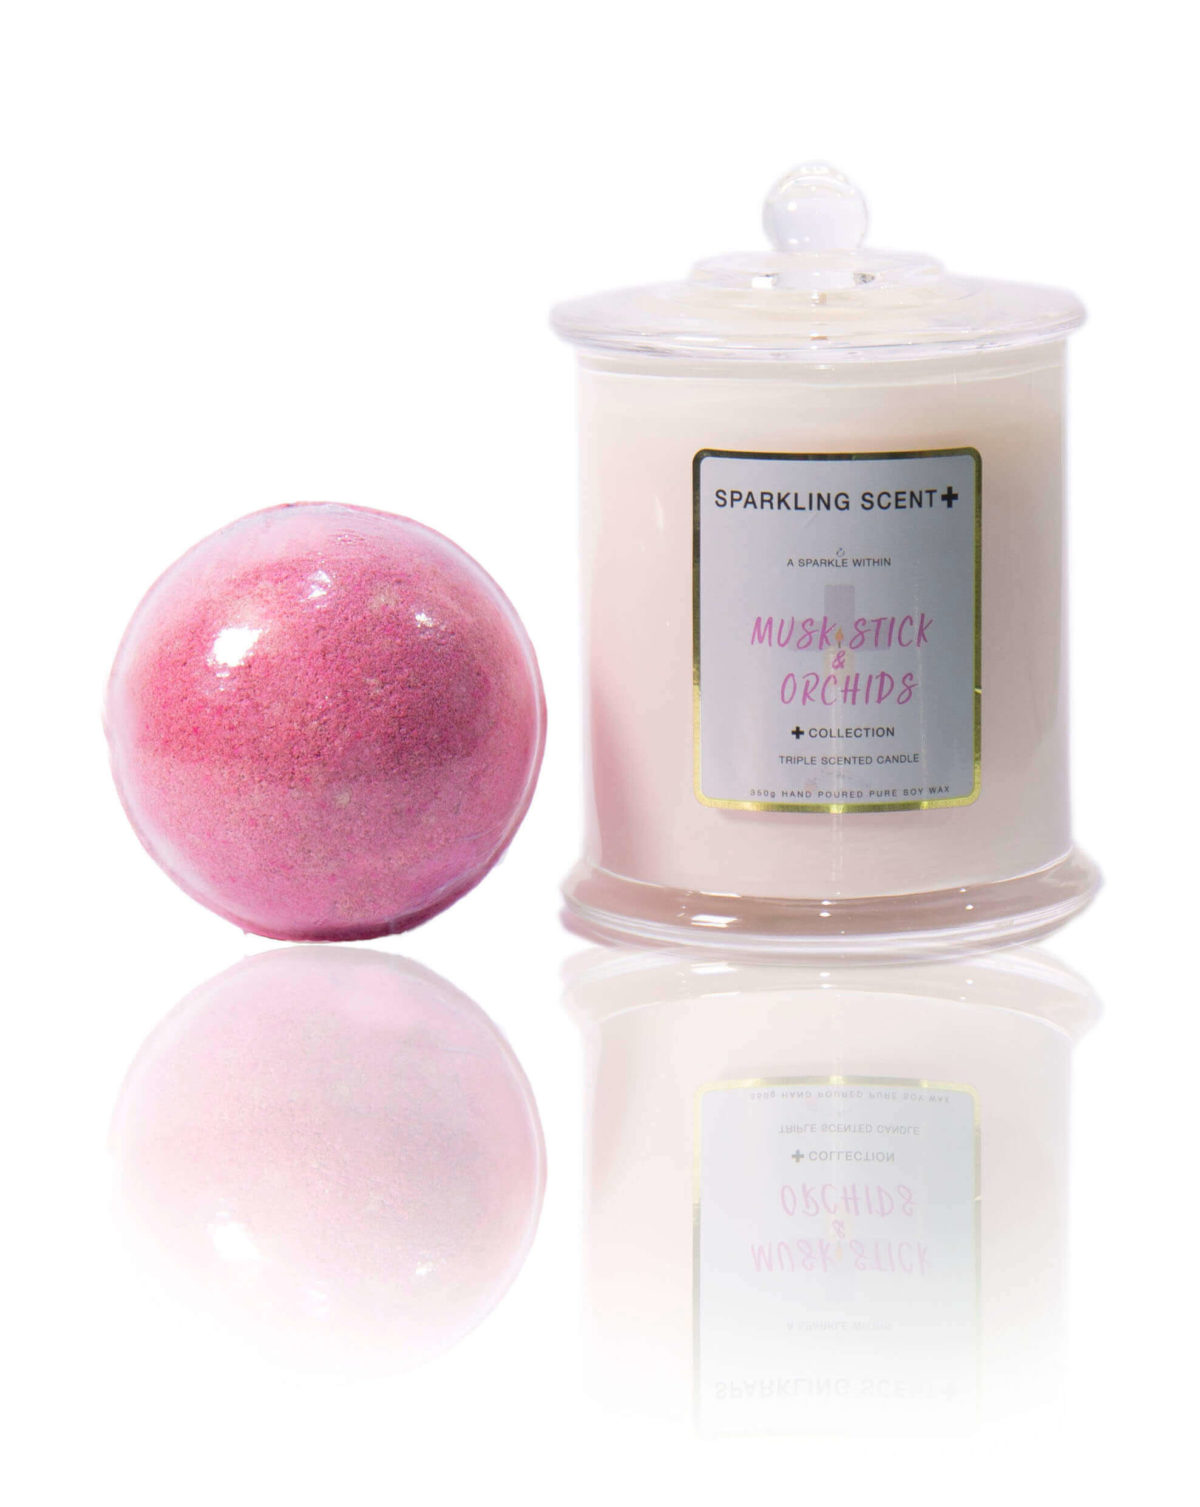 Musk Sticks gift set in the centre of the screen. A bright mica pink Bomb bomb and a Glossy White Elegant French Gala candle.